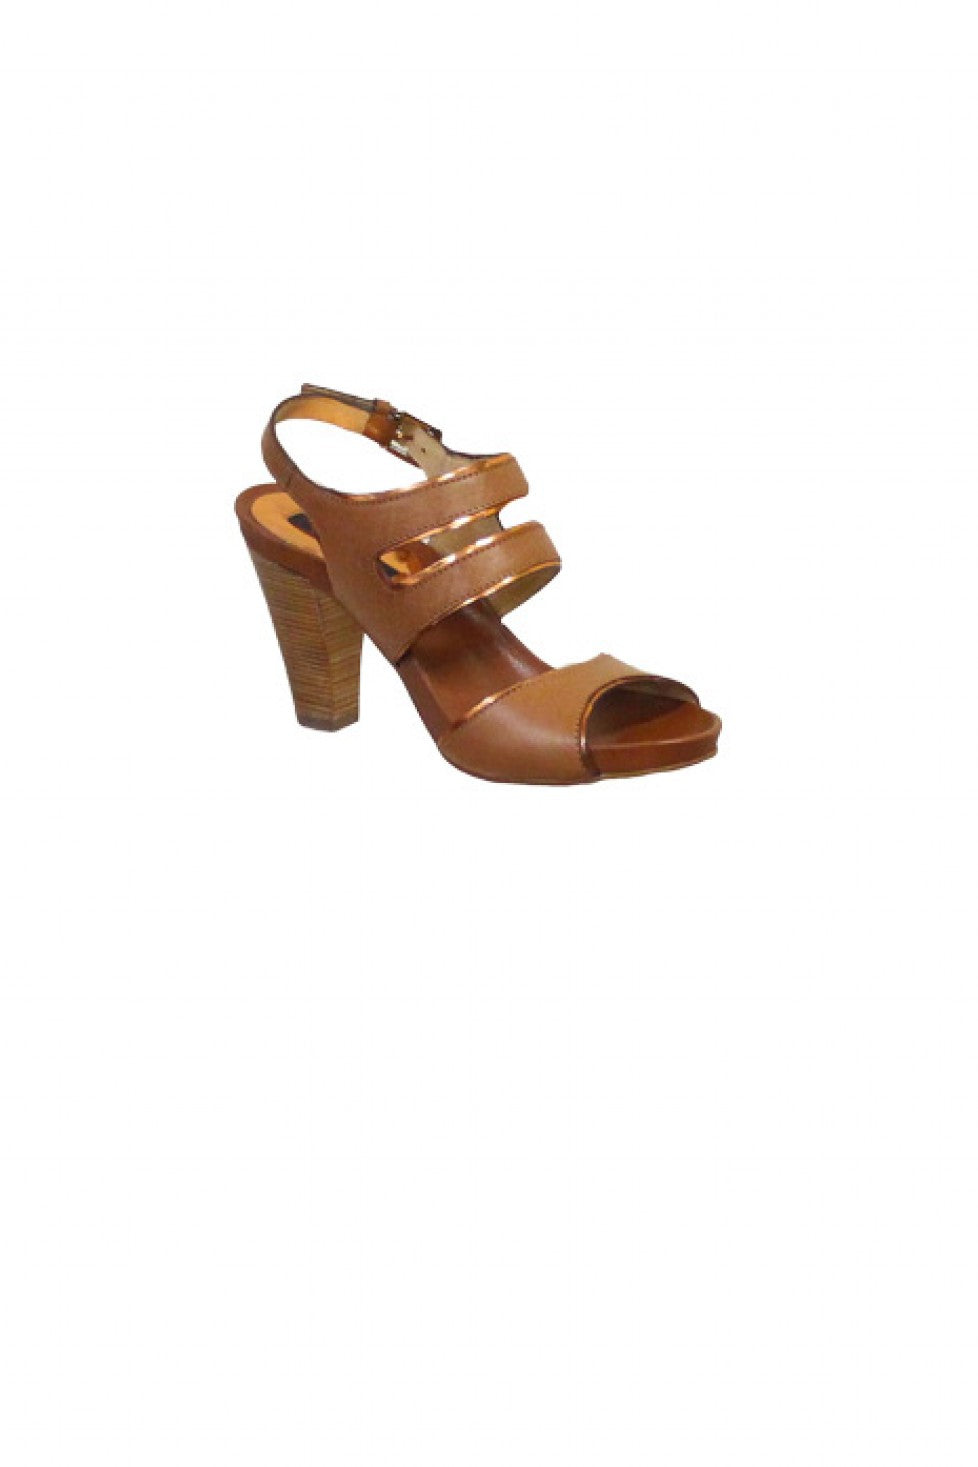 Tan Gold Zinda Sandal Heel Style and Grace